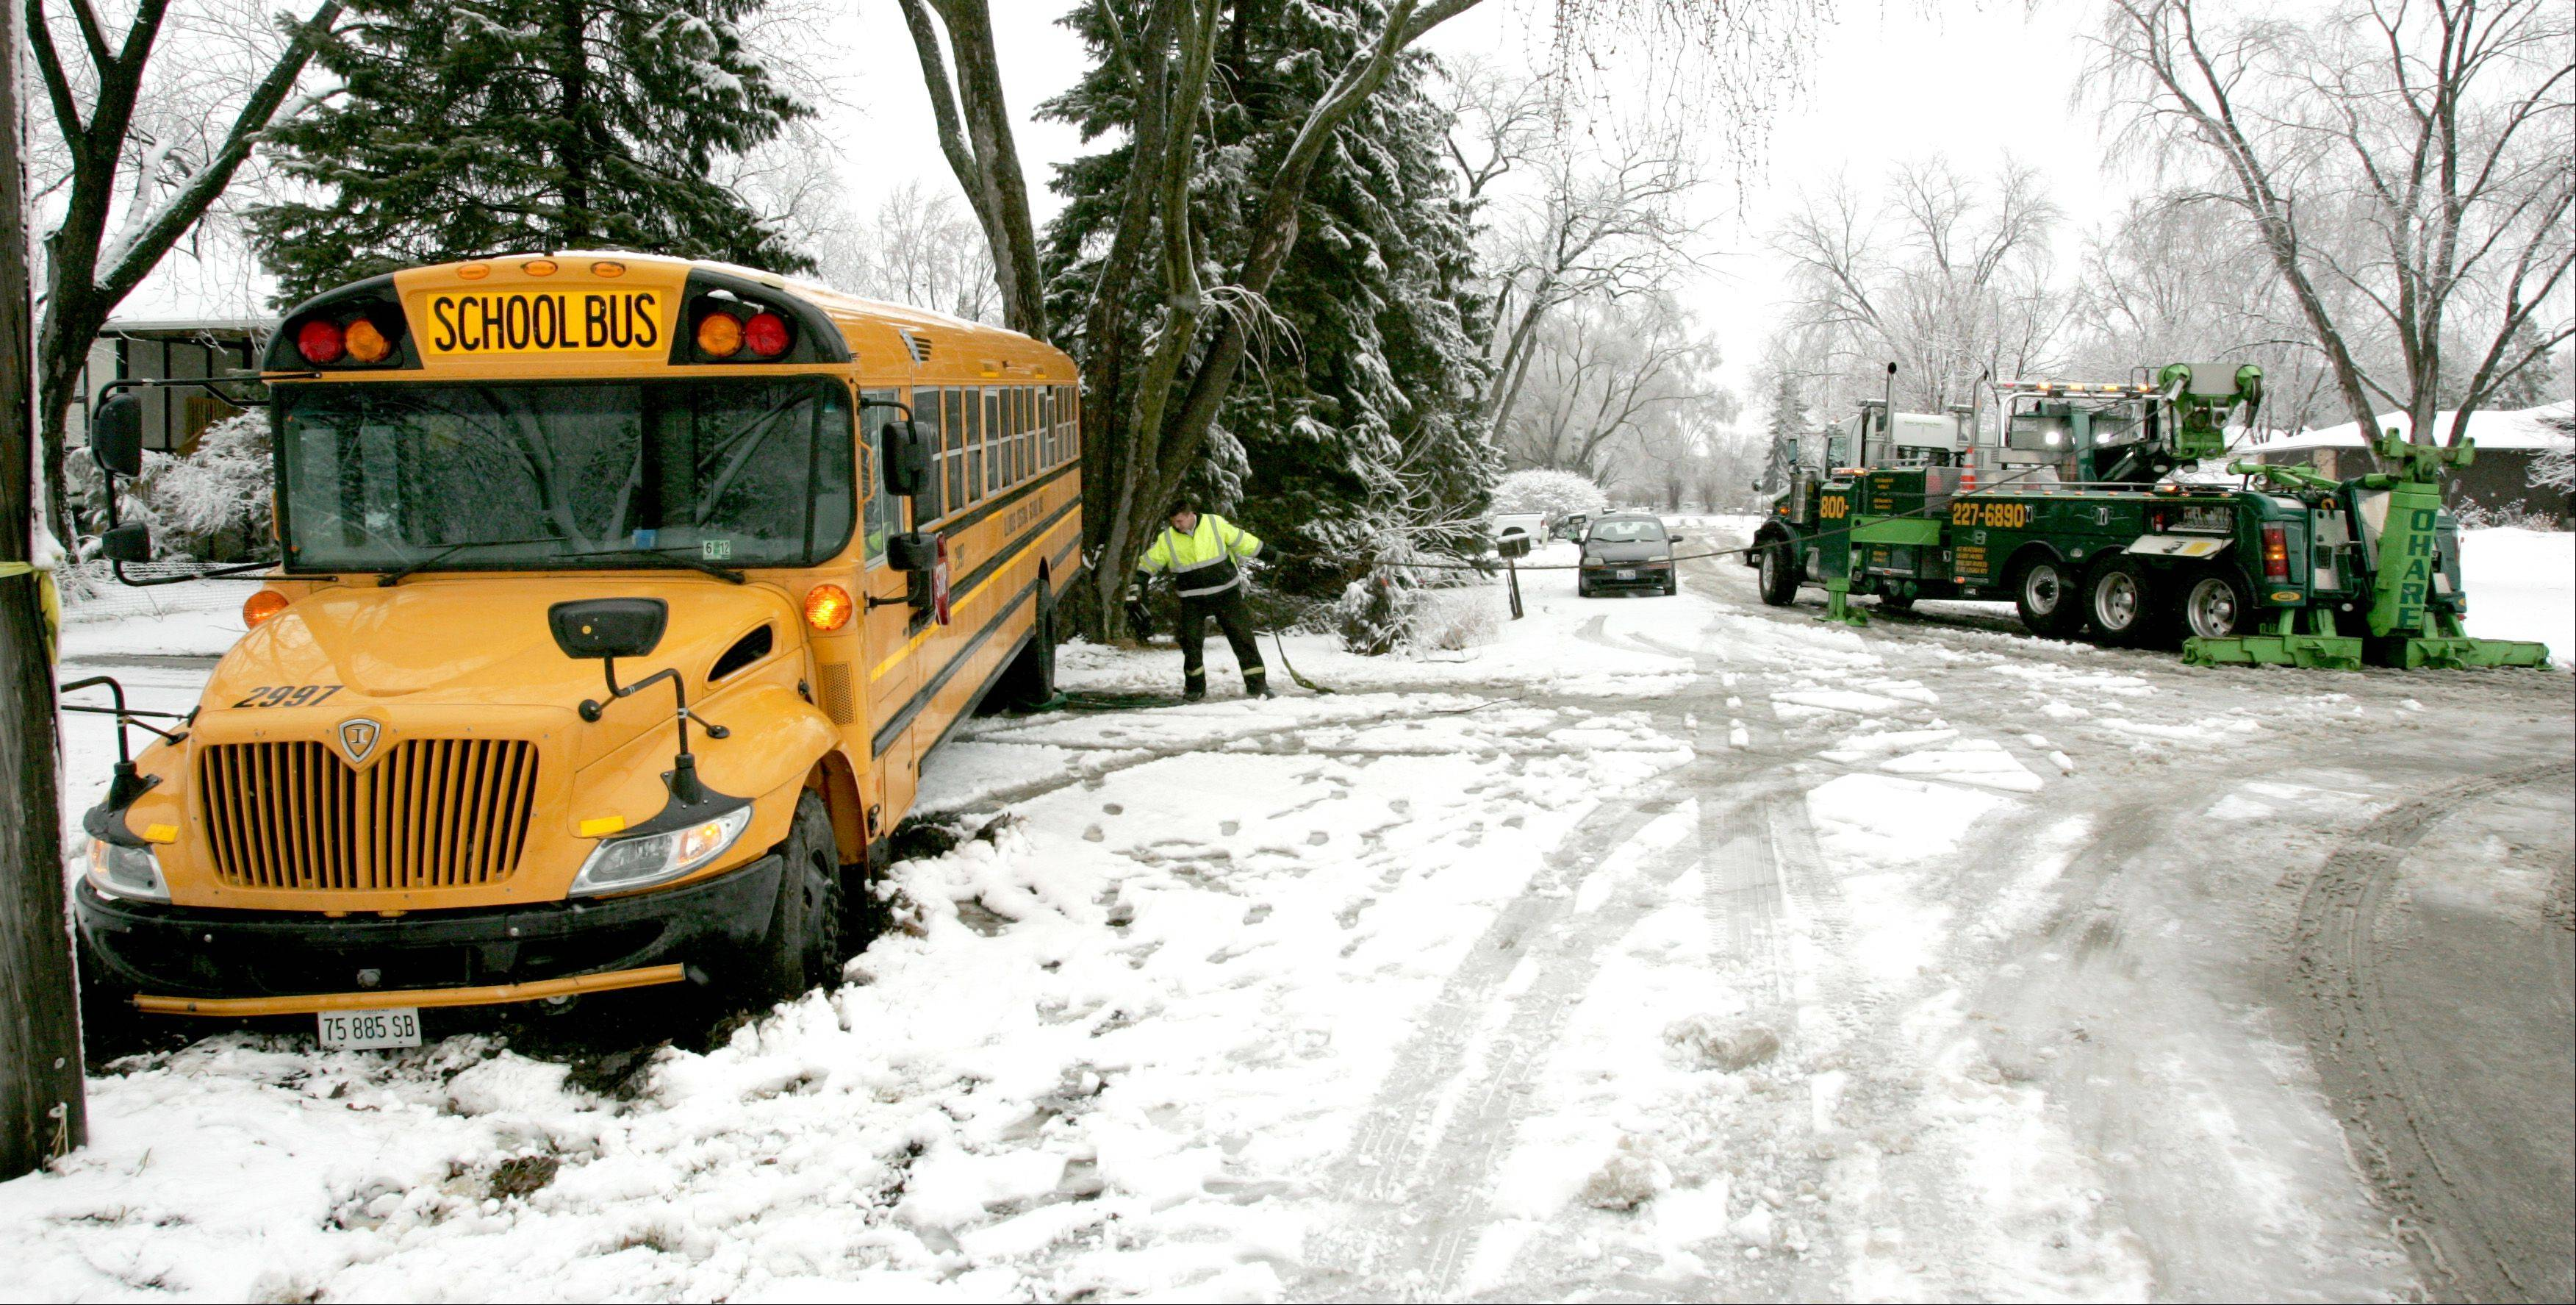 O'Hare Towing Service driver Matt Bartlett prepares to pull a school bus that slid off a Lisle street Friday and became stuck in the snow and mud. None of the two dozen students on board were injured.